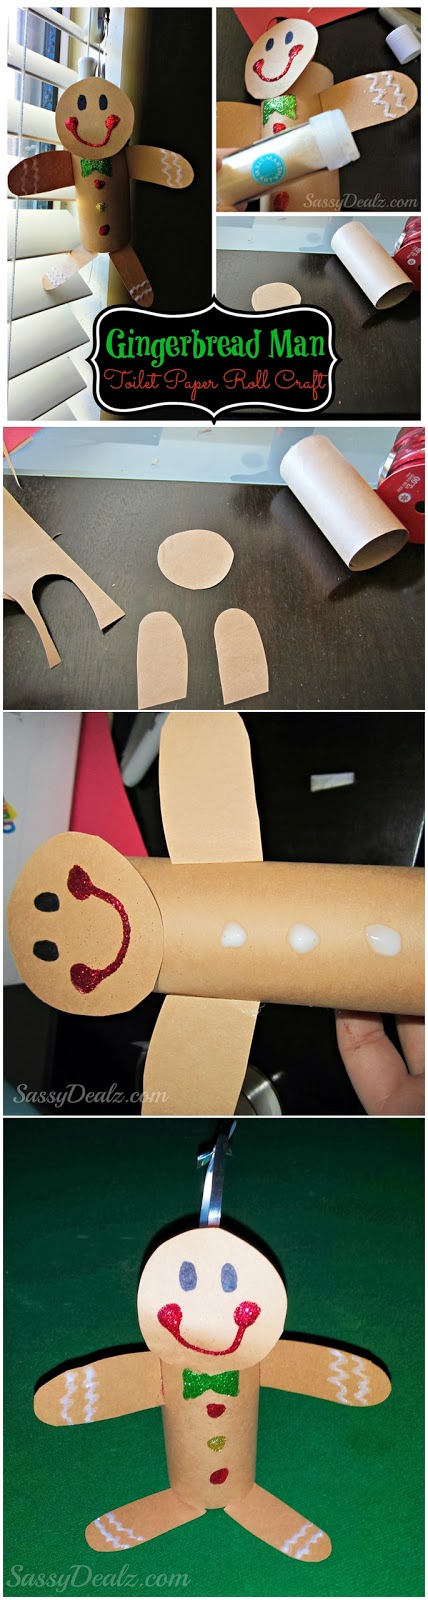 Gingerbread Man Toilet Paper Roll Craft for Kids